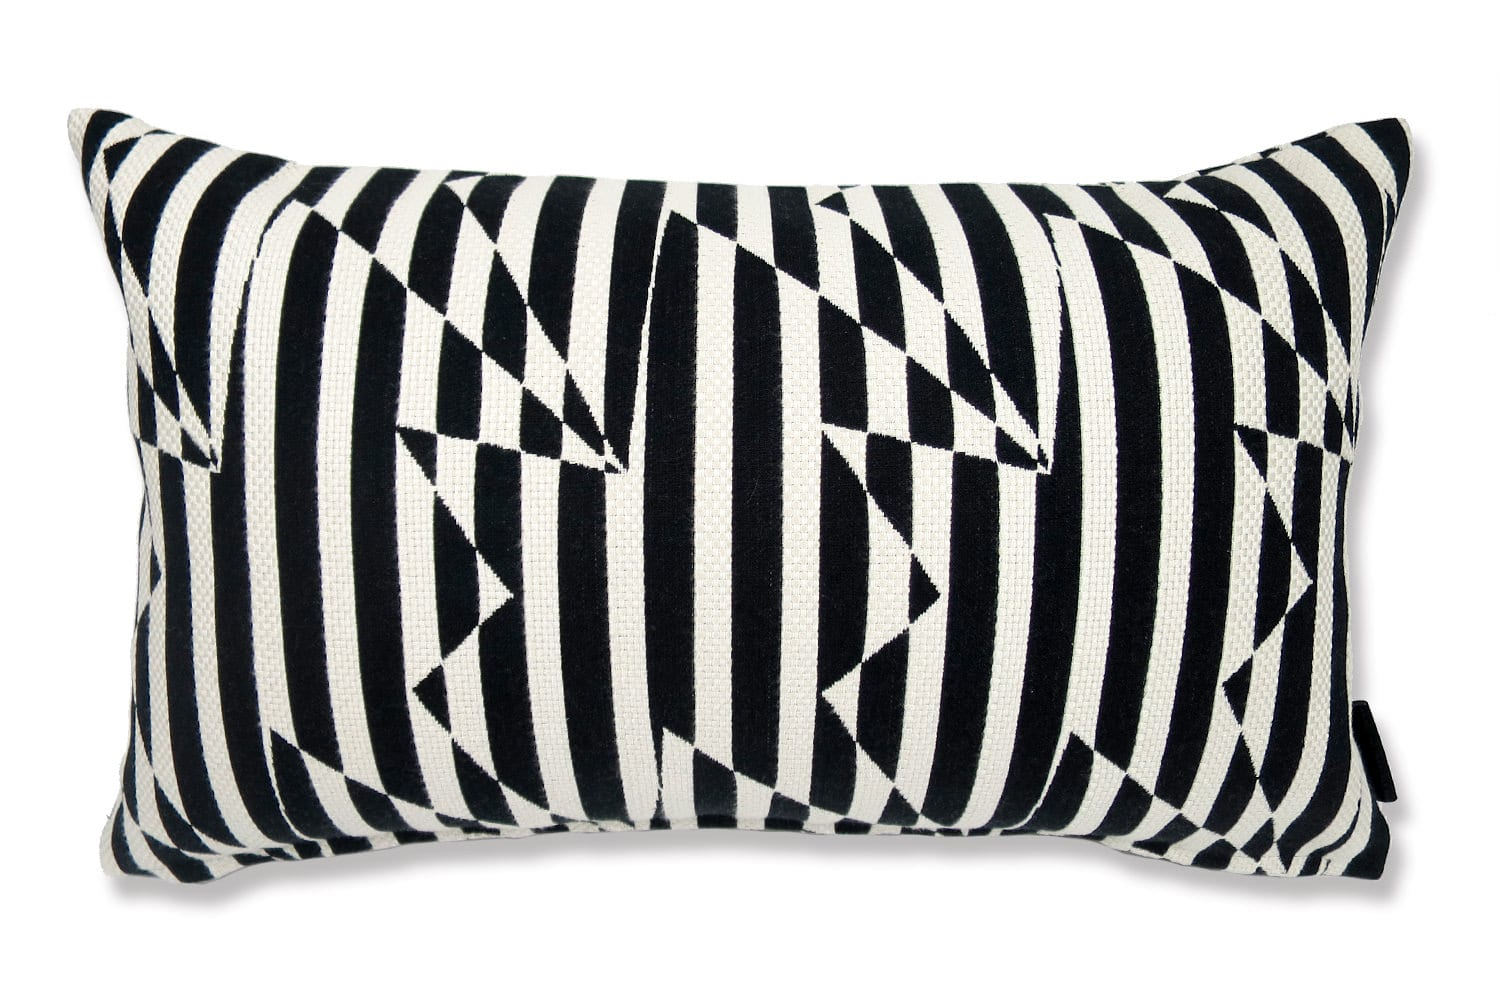 The Stripey ZigZag Bird Monochrome cushion by Kirkby Design x ELEY KISHIMOTO(イーリー キシモト)fabric クッション 50×30cm 中材付